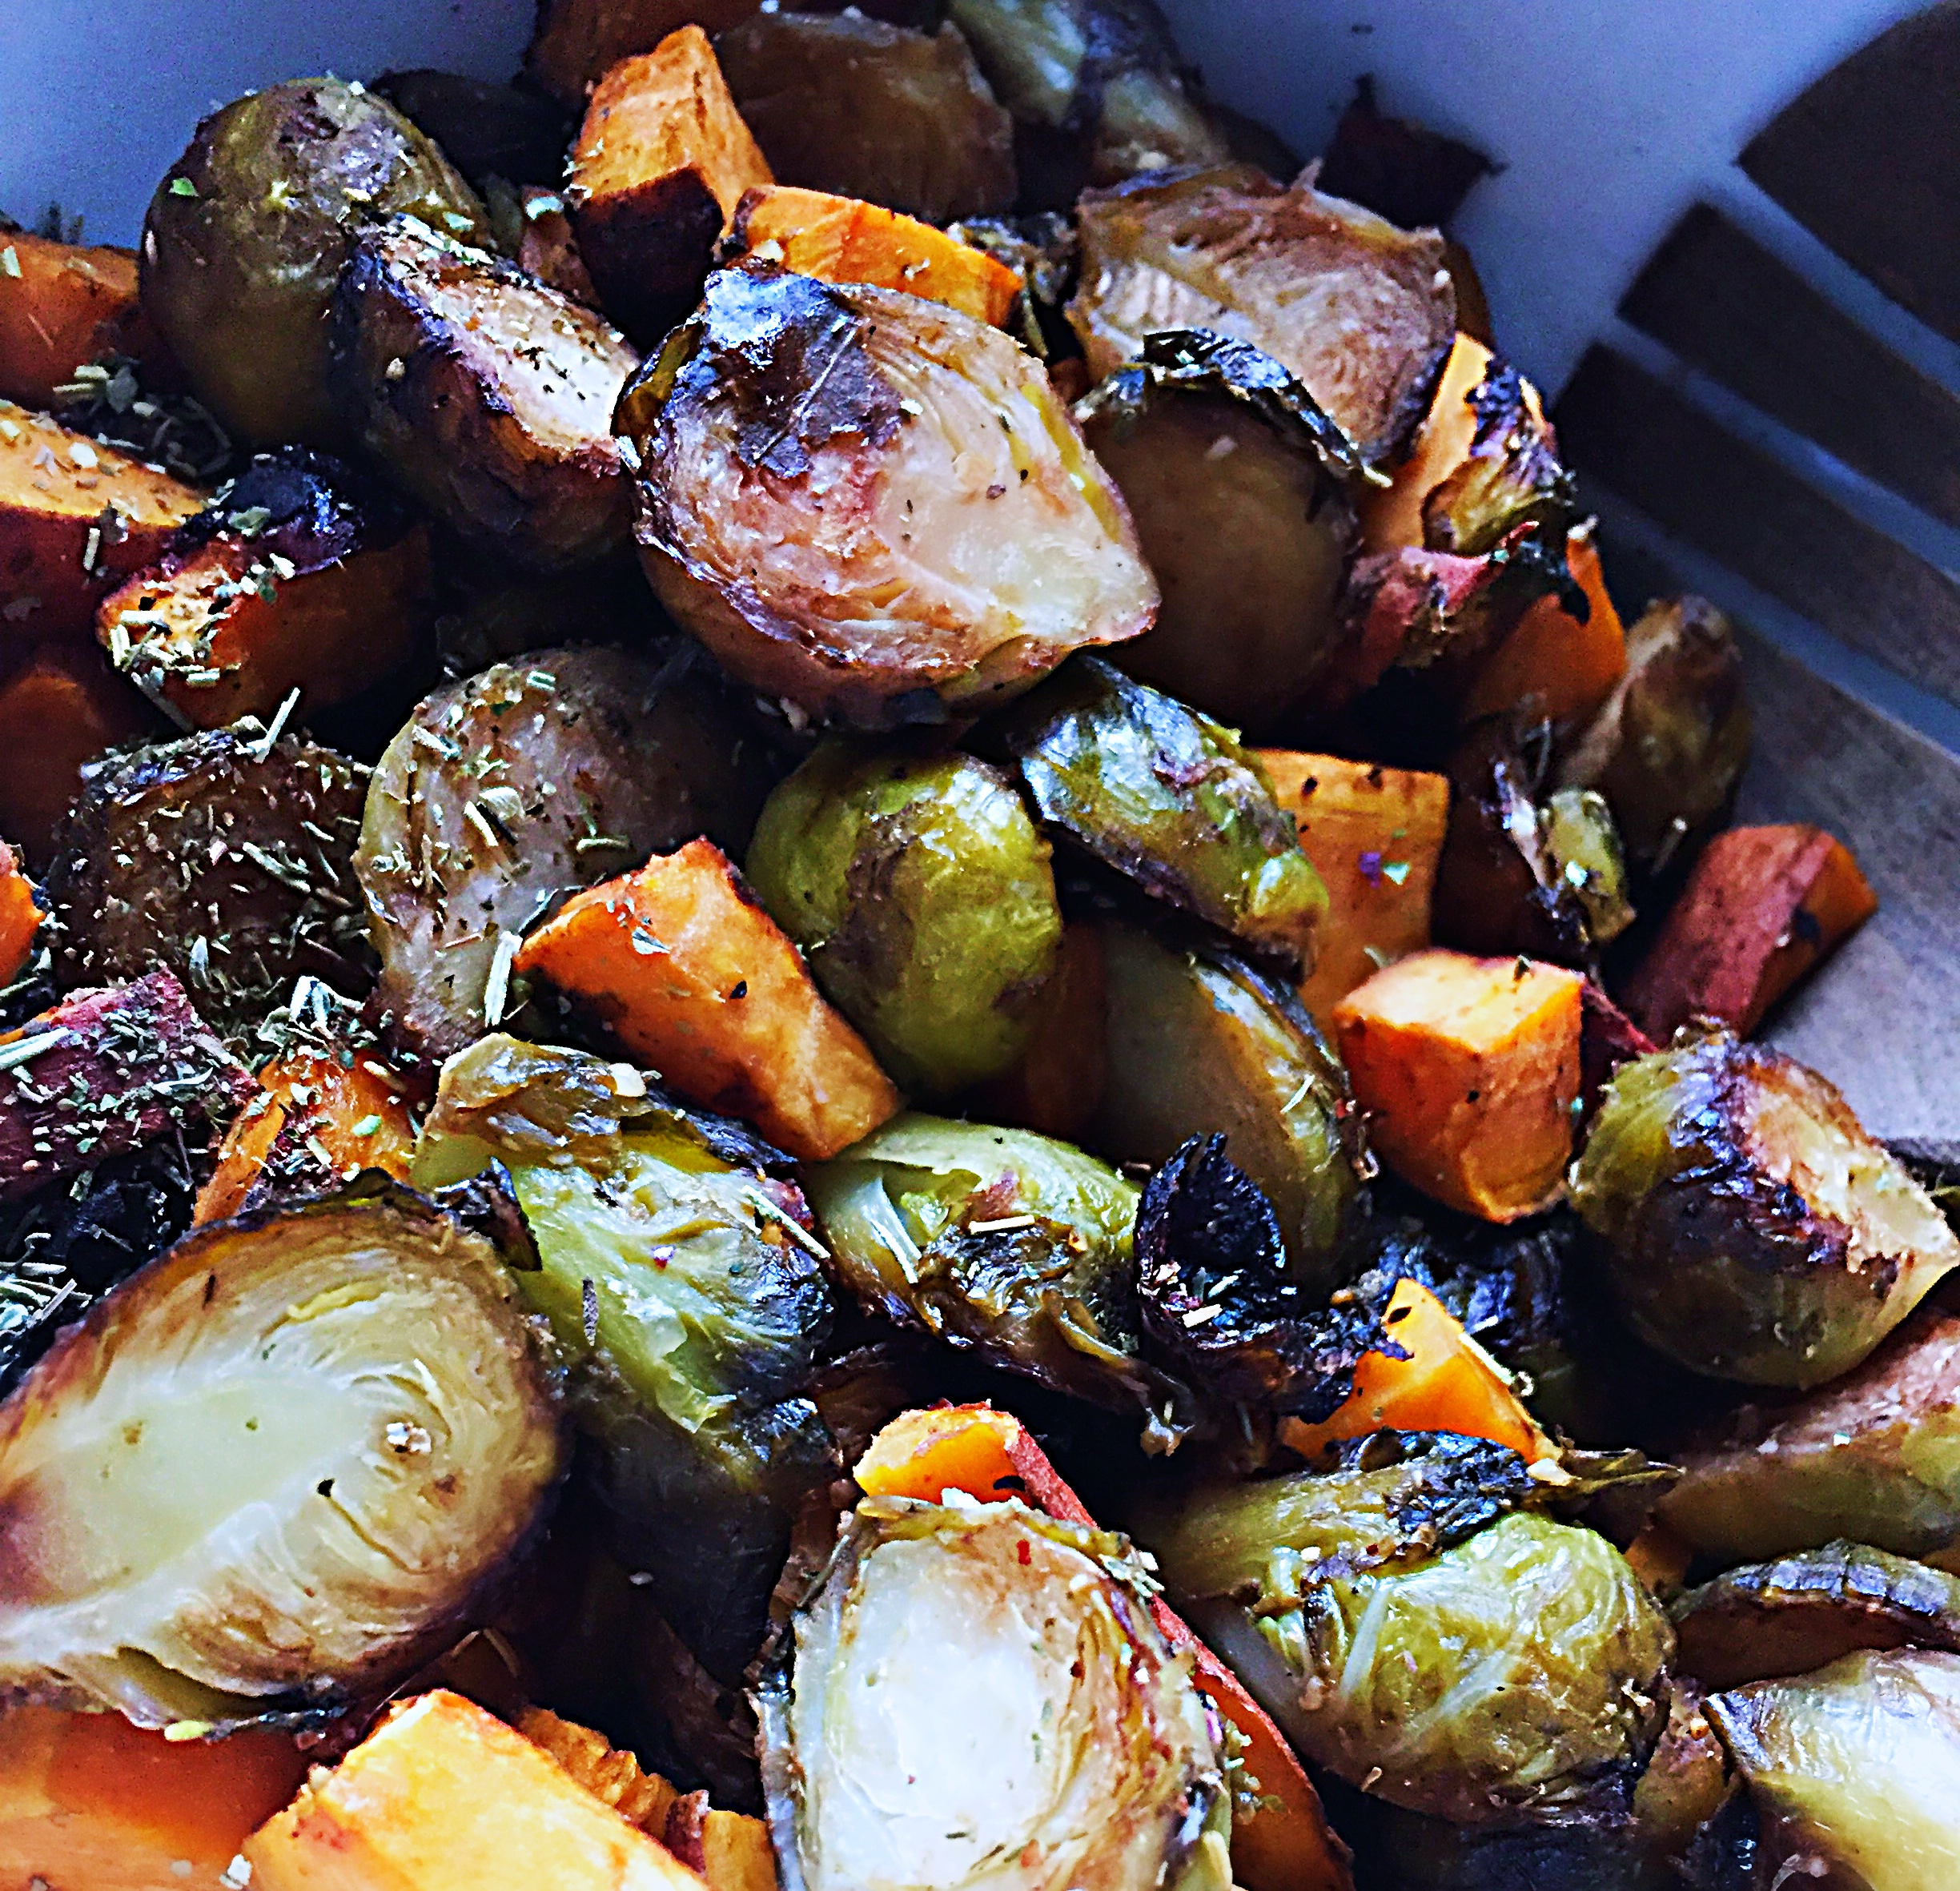 Oven Roasted Brussels Sprouts and Sweet Potatoes with Balsamic Glaze